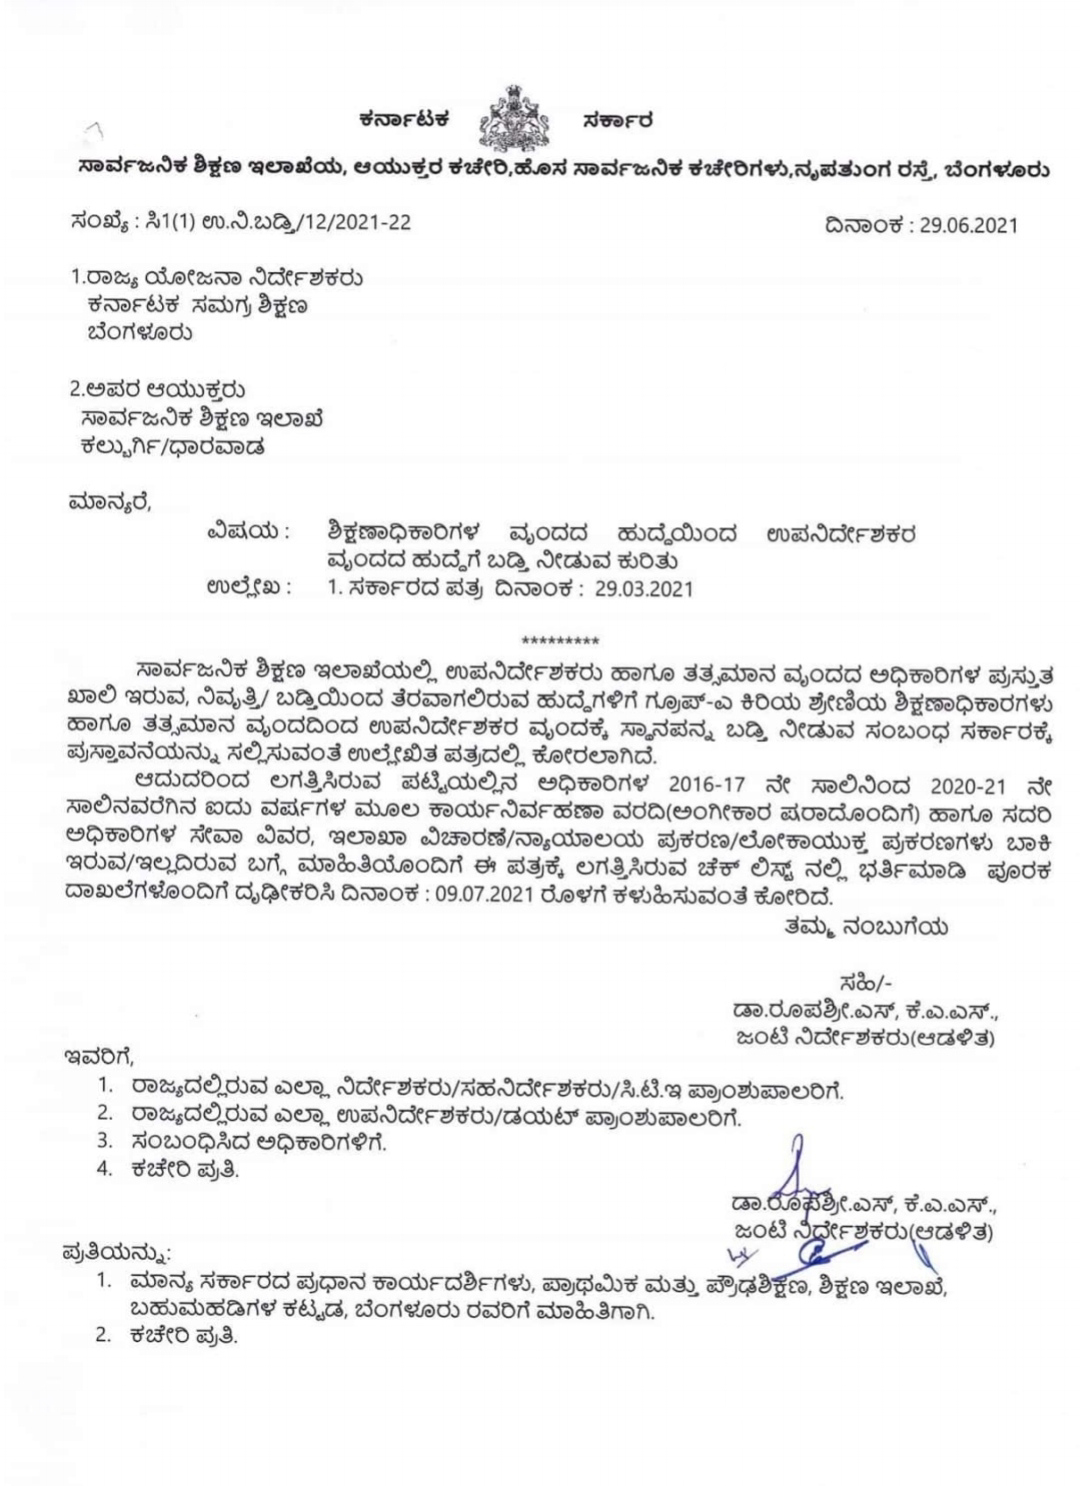 Promotion of the post of Deputy Director from the post of Public Dept. of order